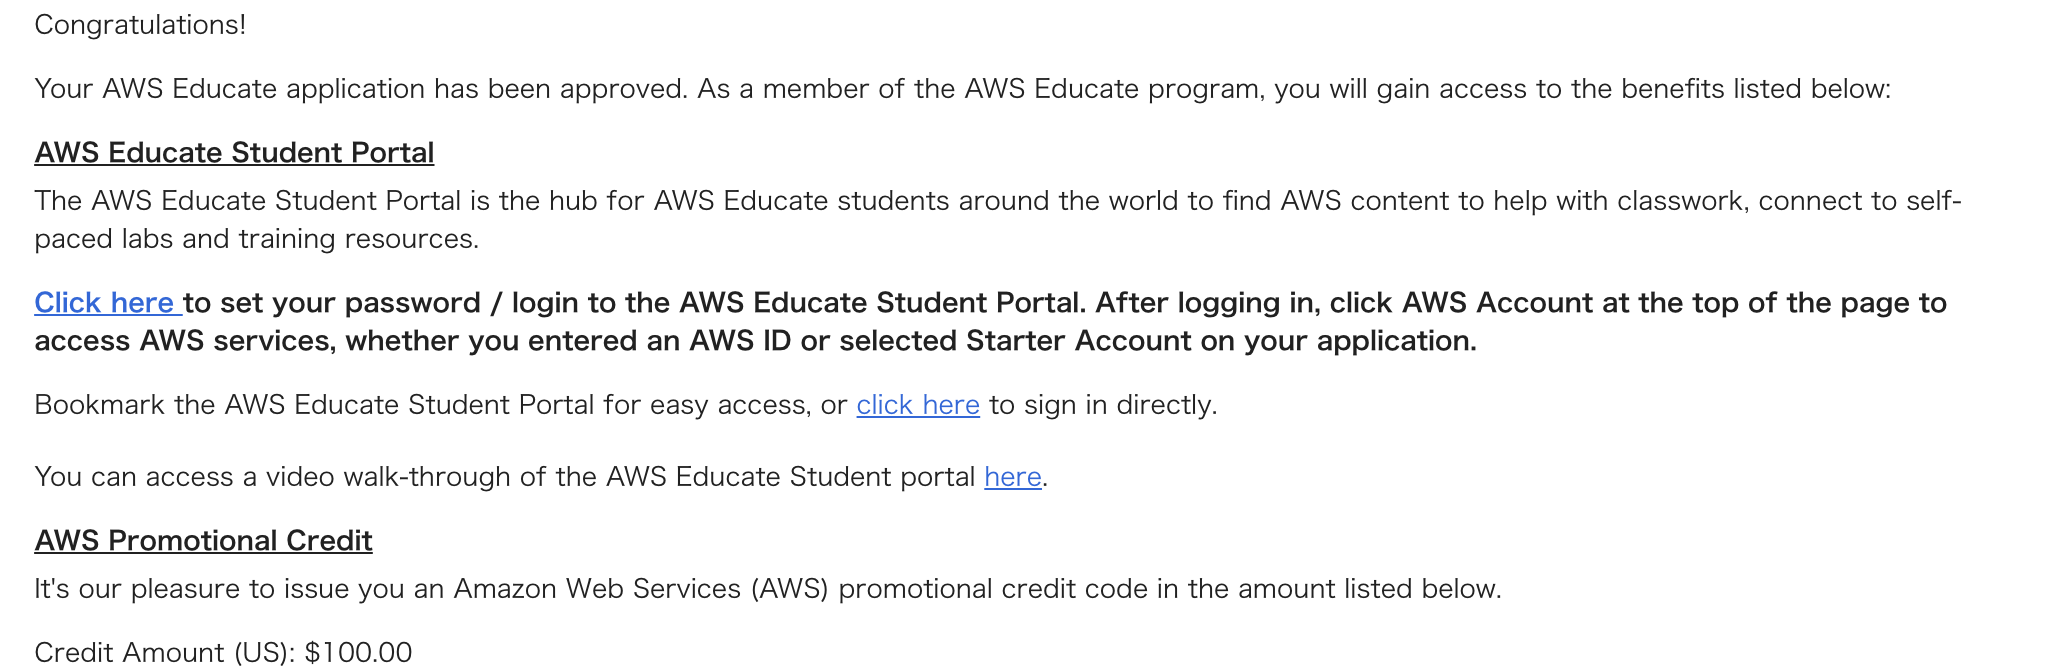 AWS educationに登録した static/images/post/aws_education_mail.png